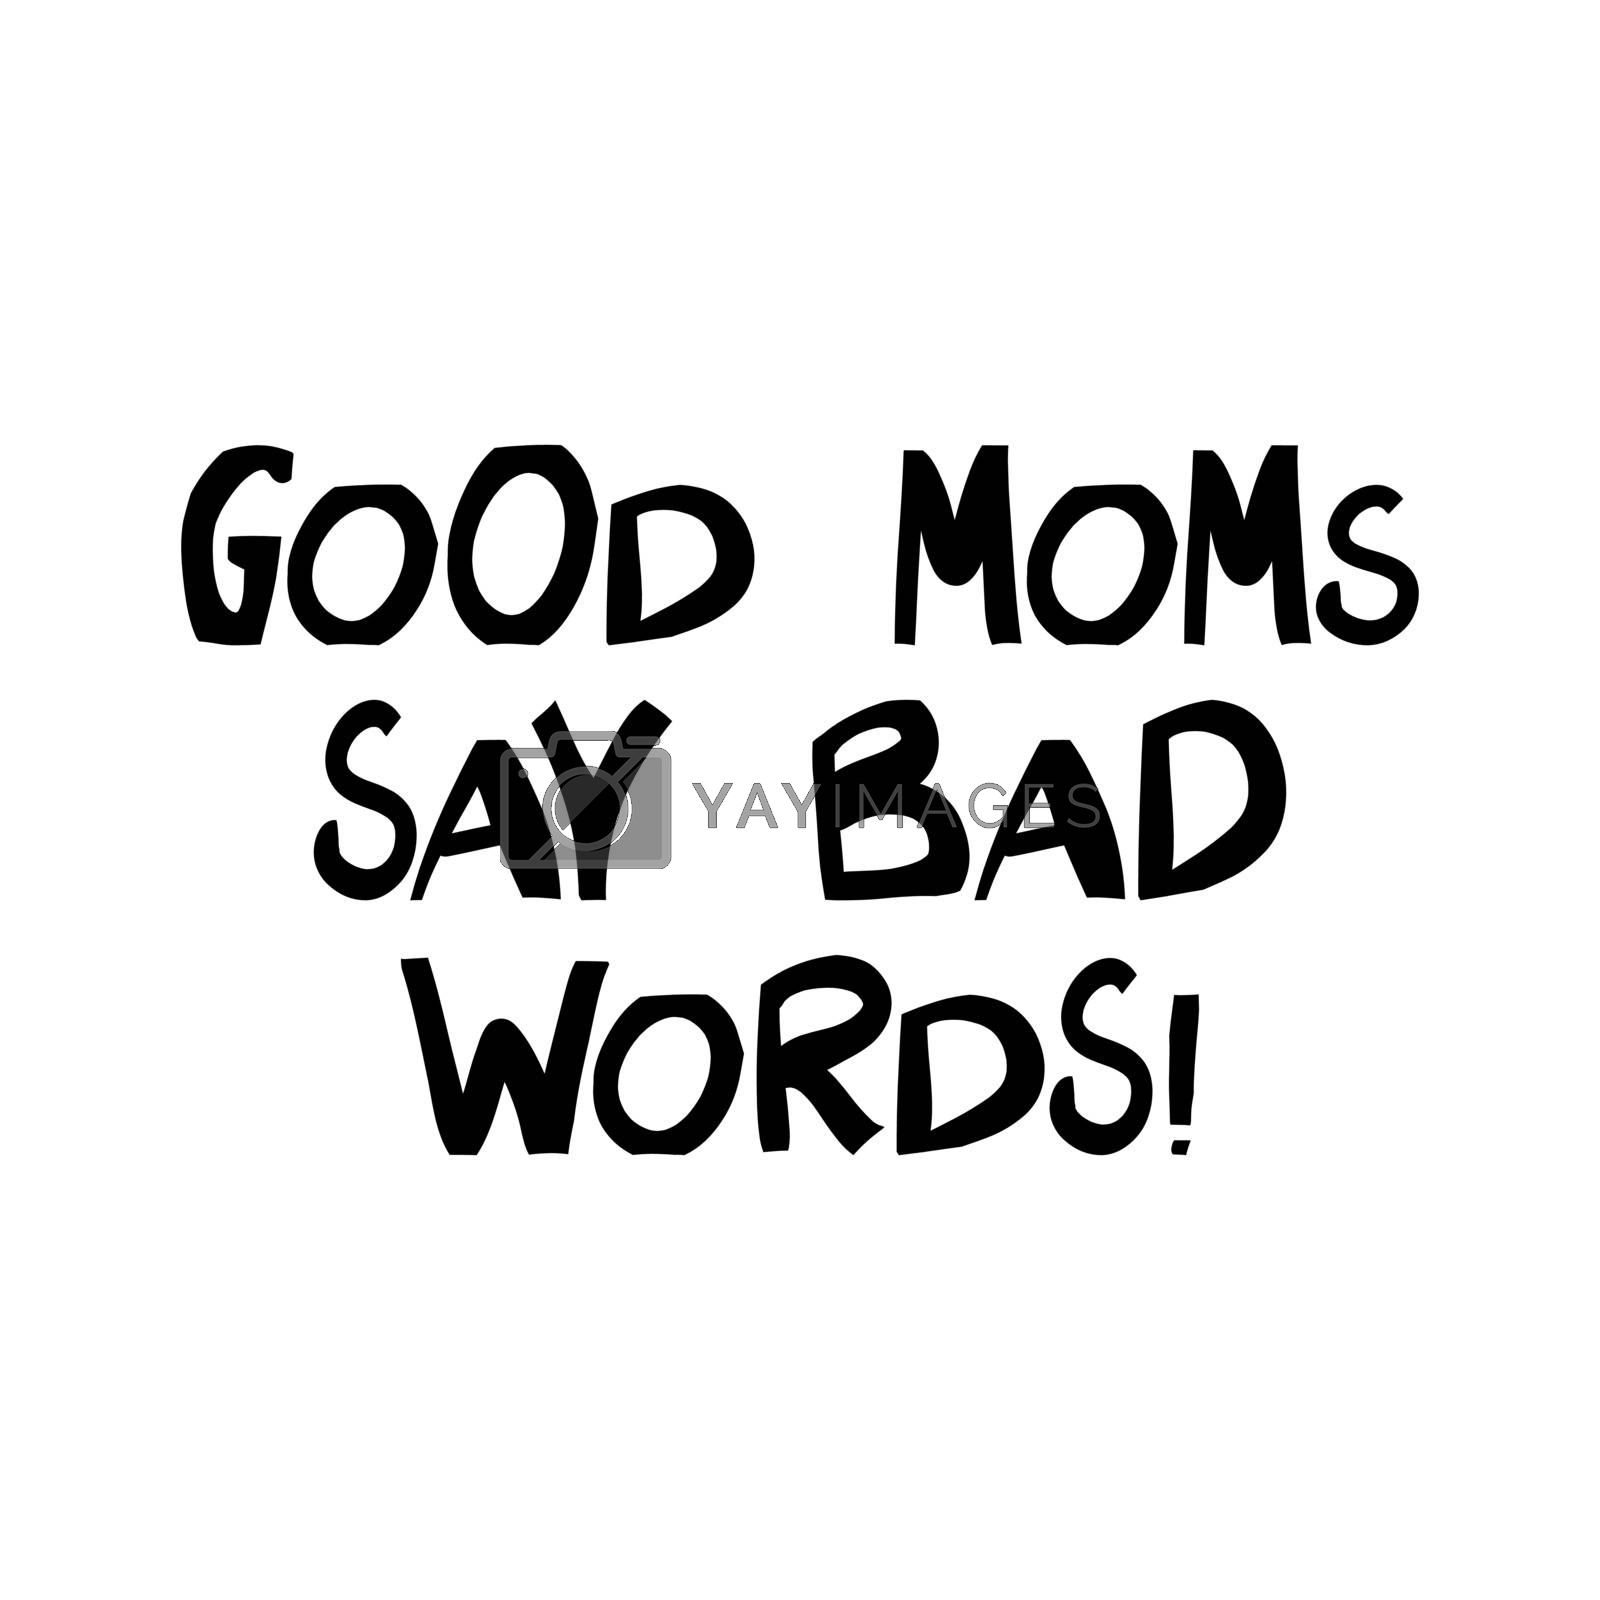 Good moms say bad words. Cute hand drawn lettering in modern scandinavian style. Isolated on white background. Vector stock illustration.